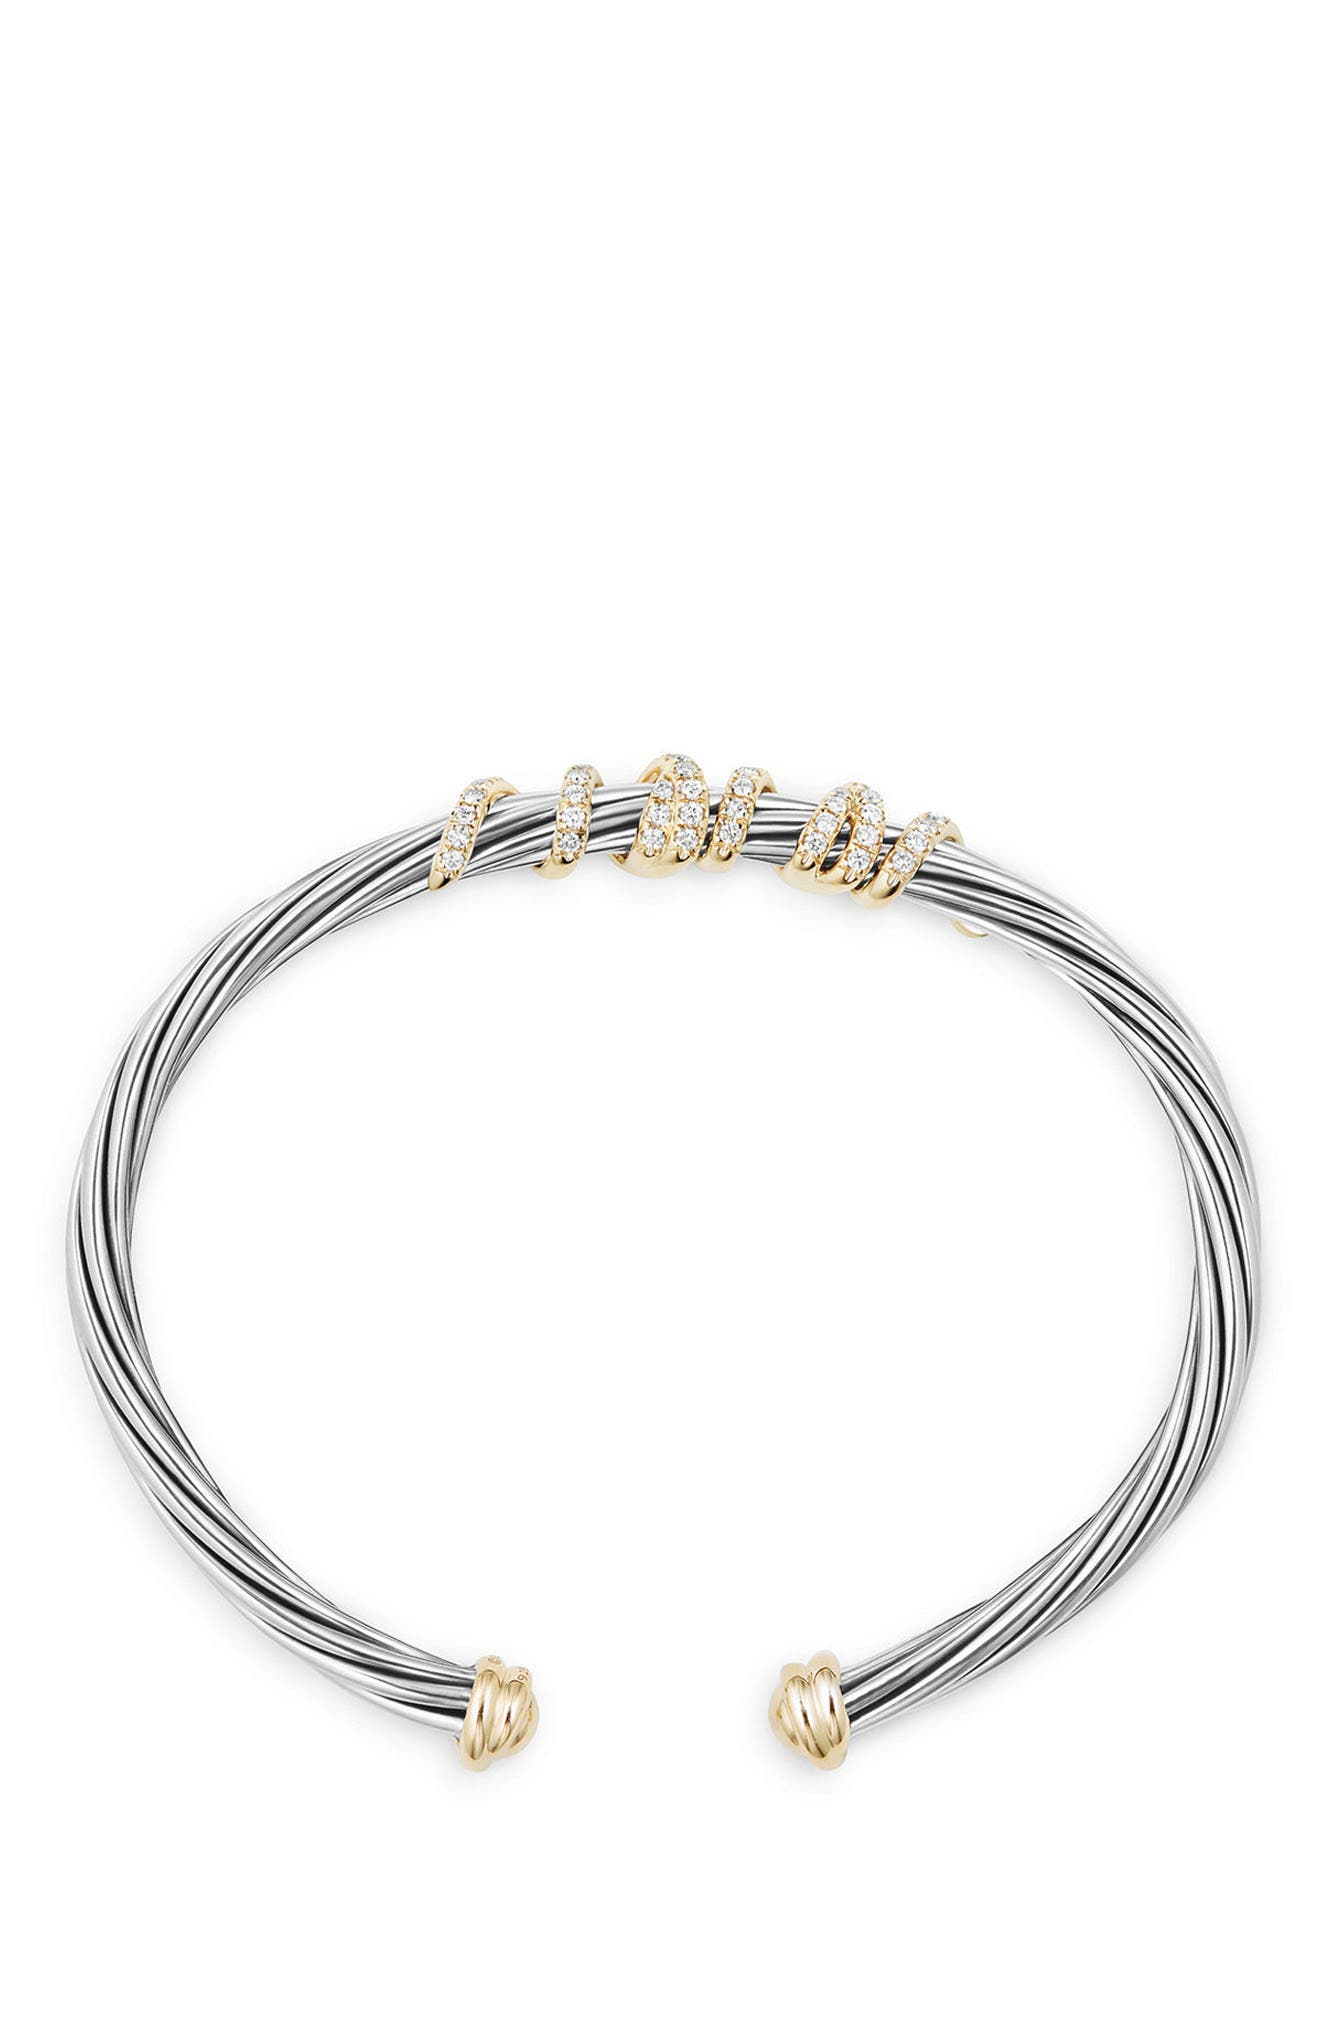 Helena Center Station Bracelet with Diamonds and 18K Gold, 4mm,                             Alternate thumbnail 3, color,                             SILVER/ GOLD